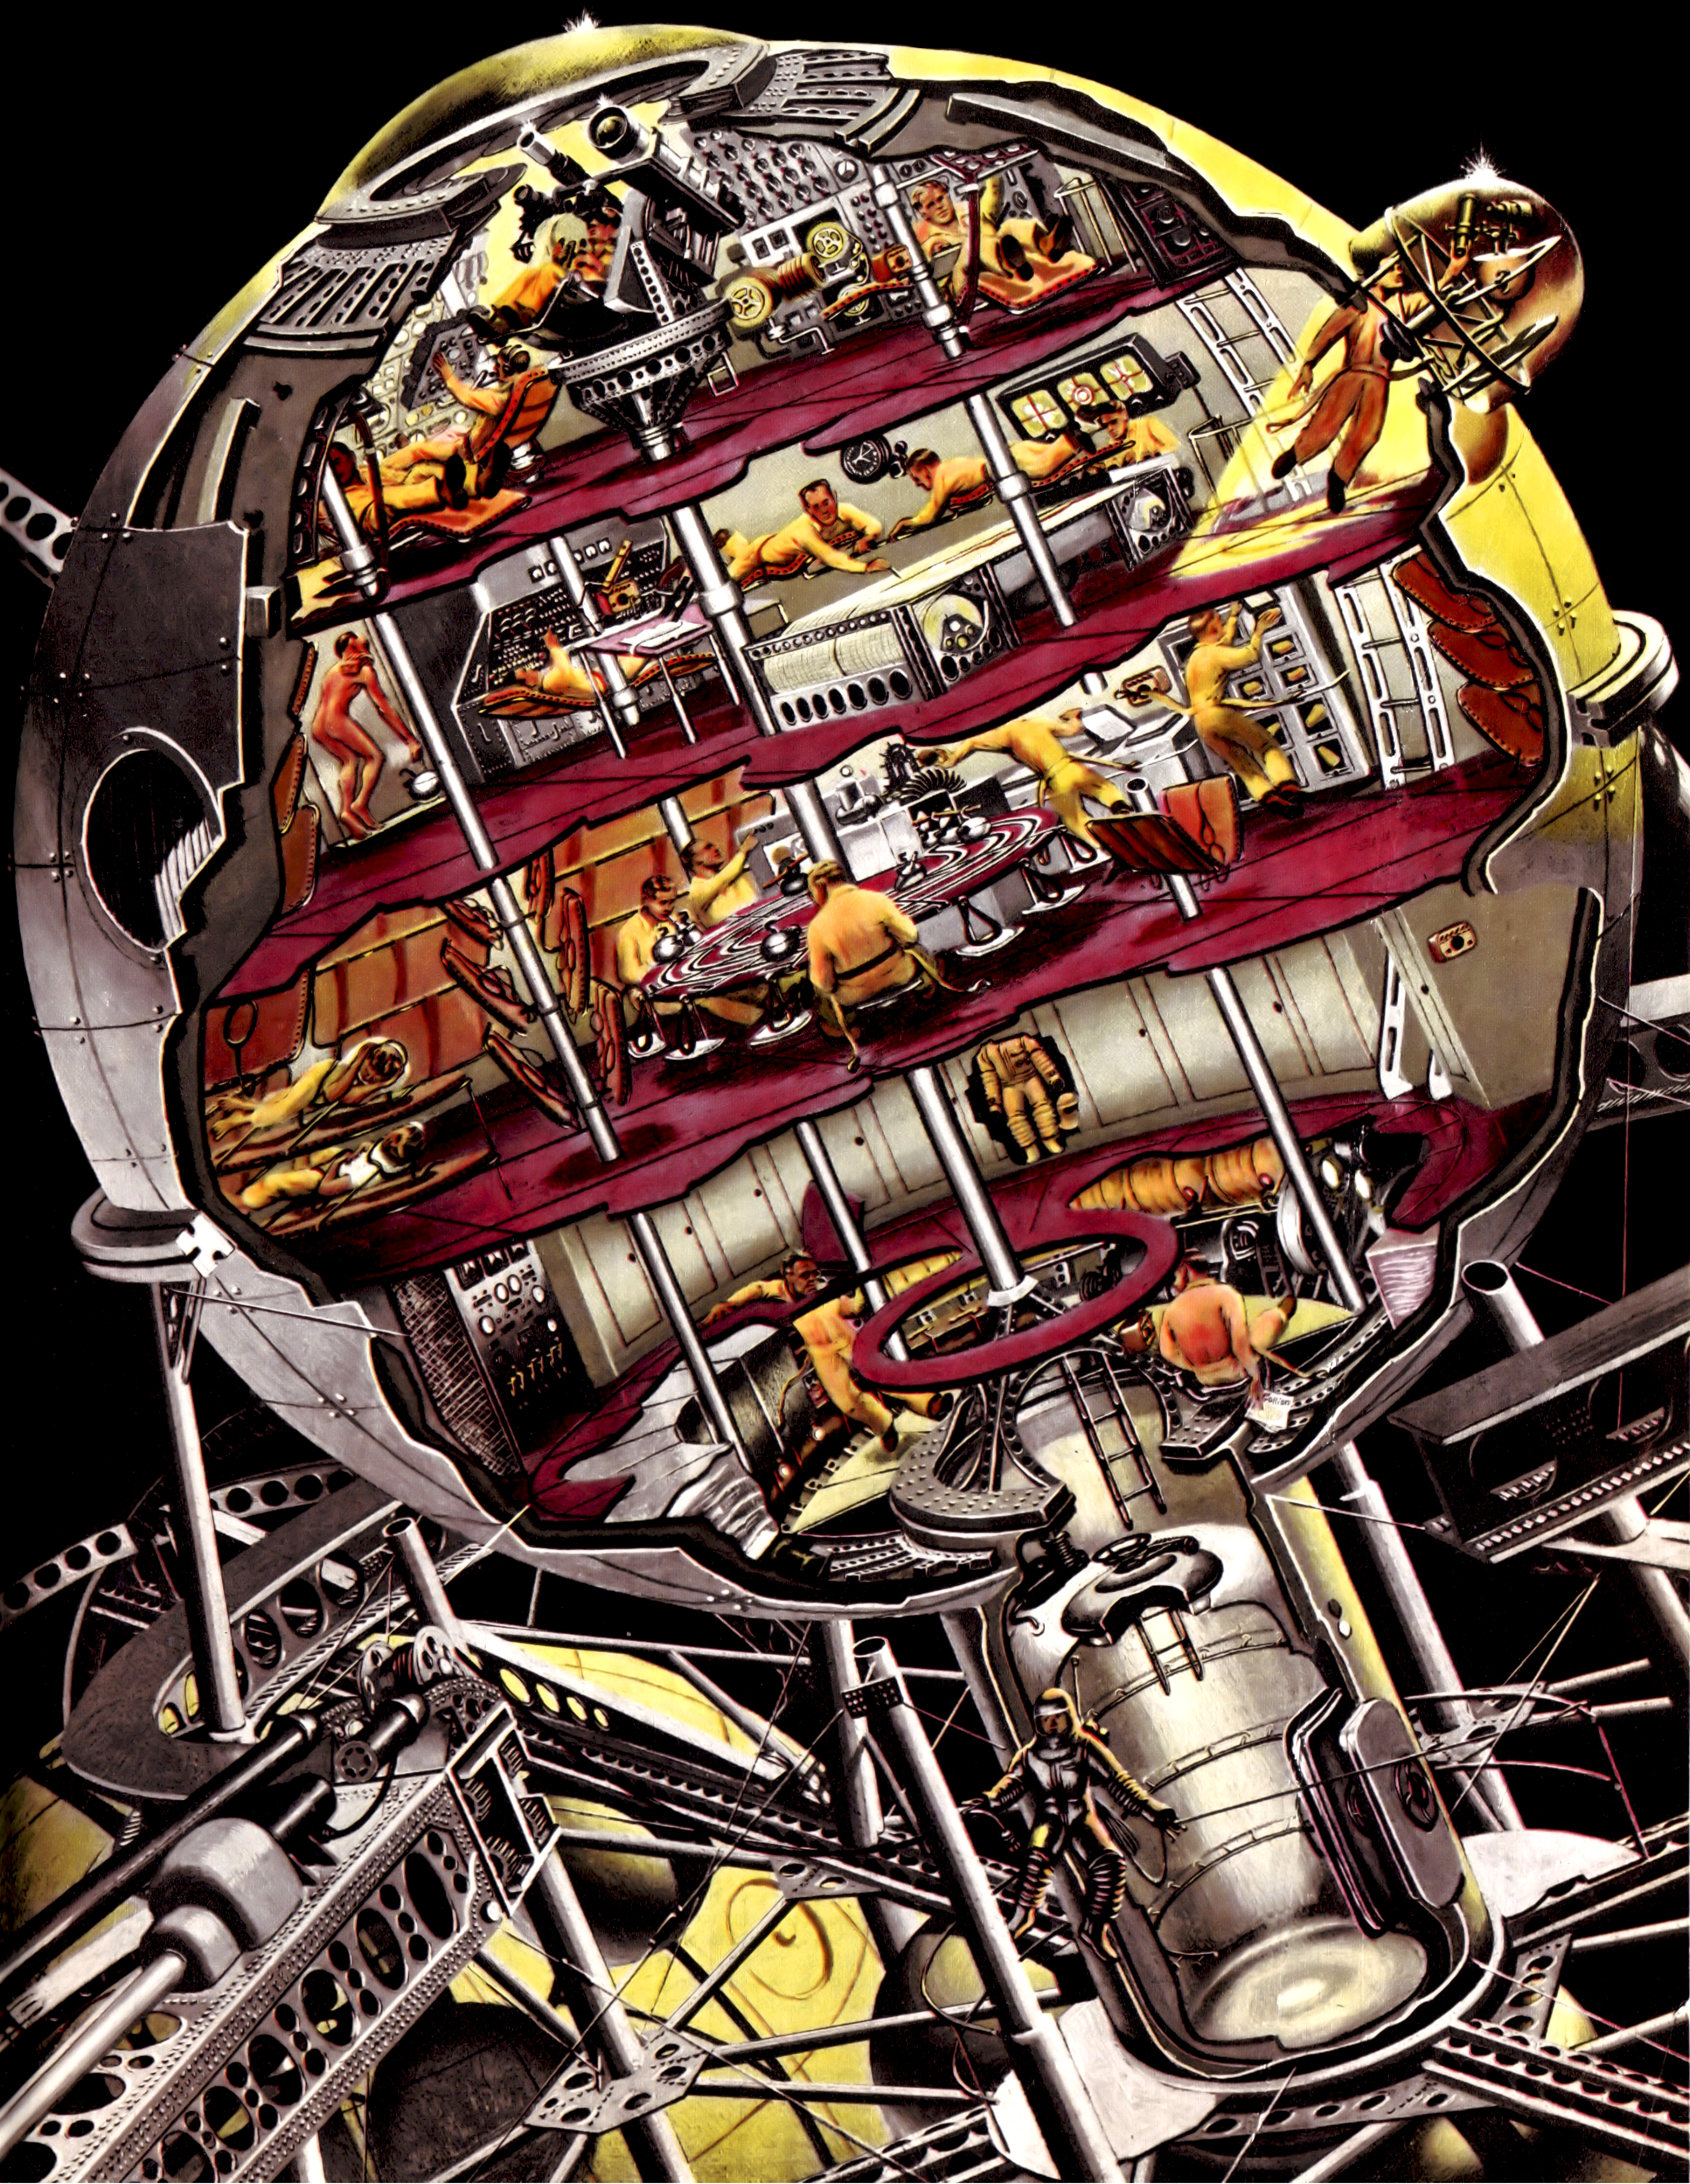 Collier 10.18.1952-p57-Spaceship for he Moon-2.jpg